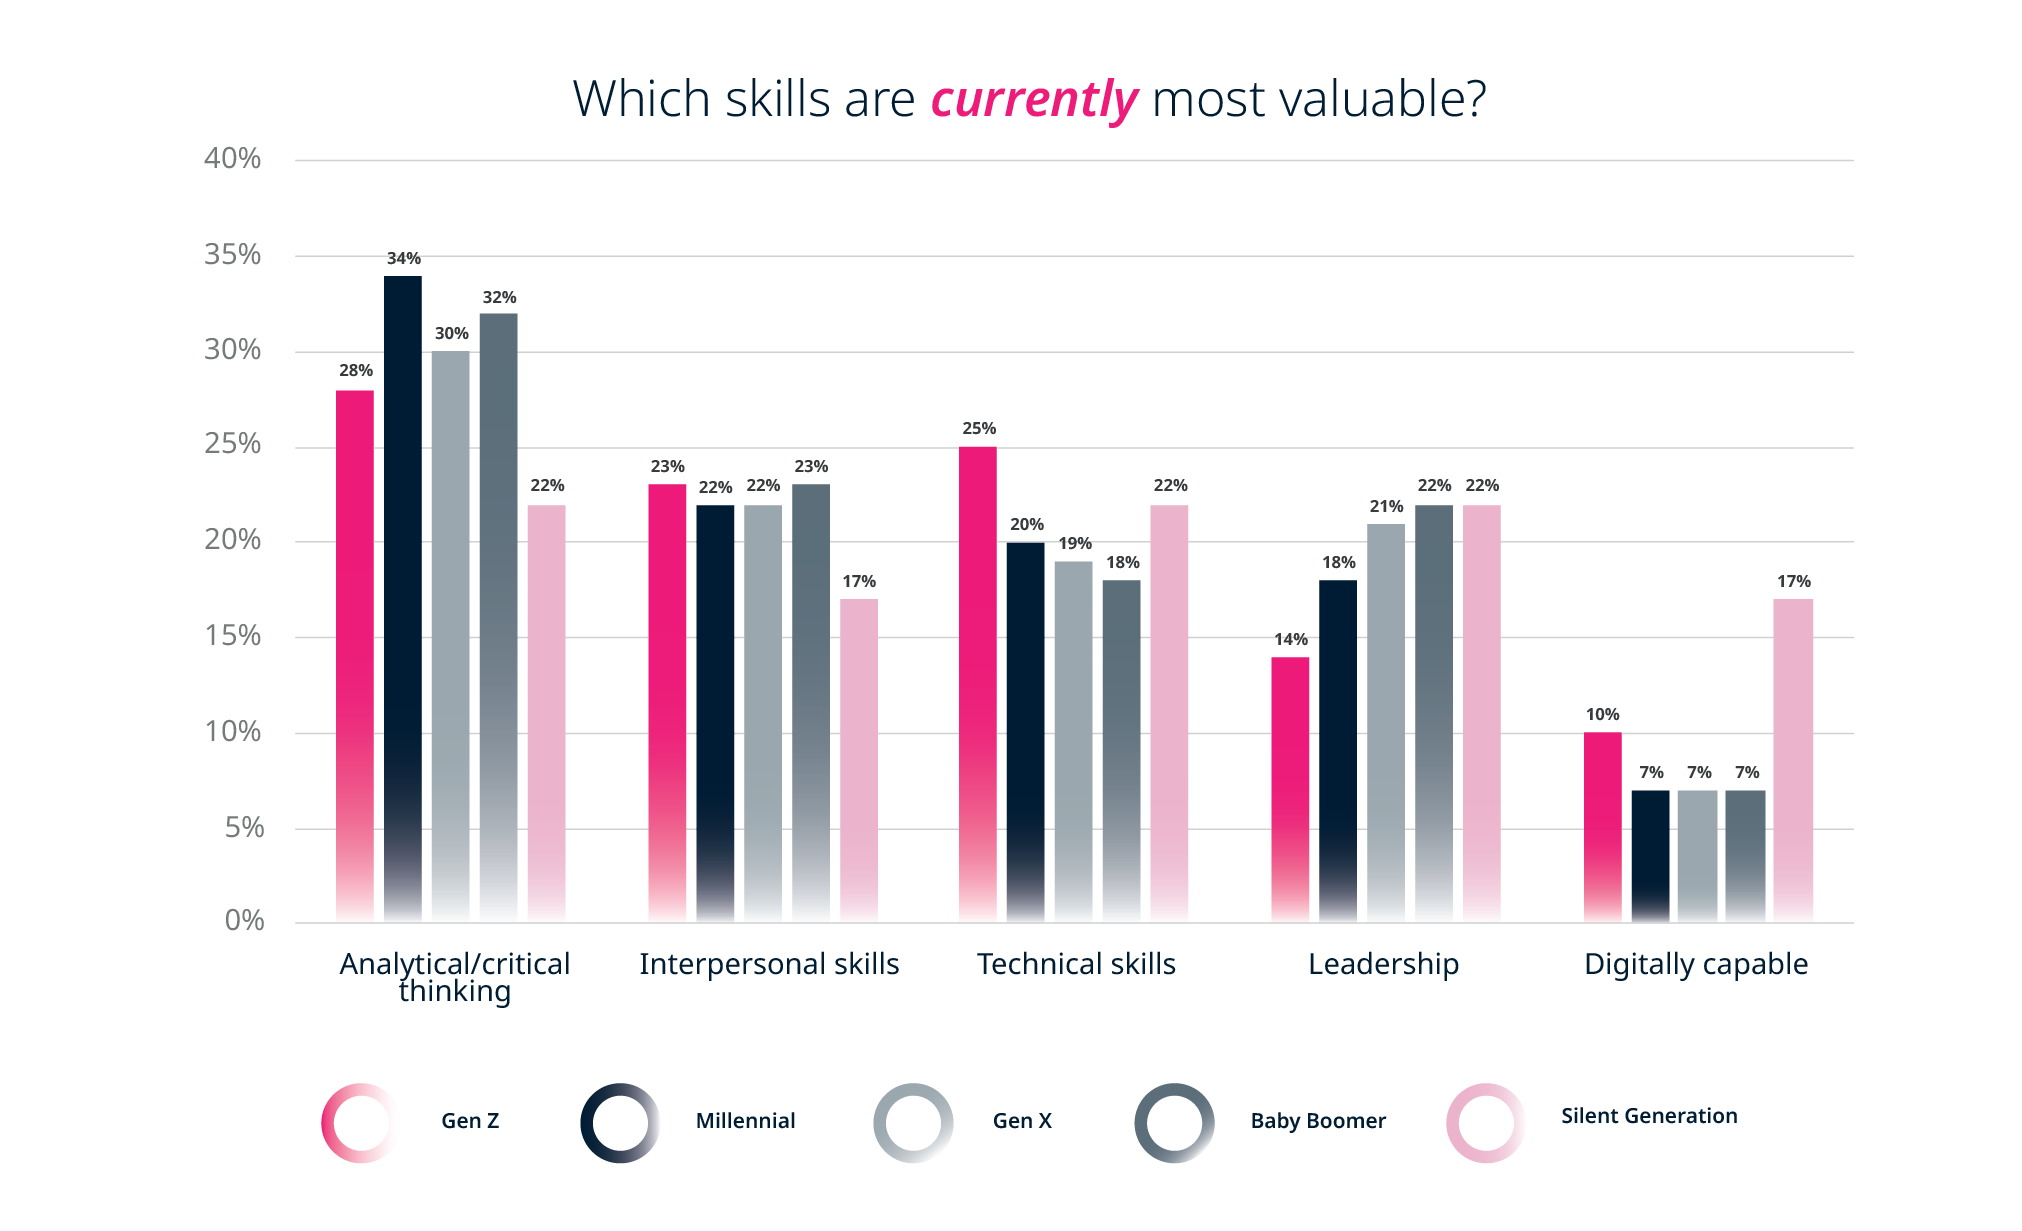 Future of work: Which skills are currently most valuable? - By generation